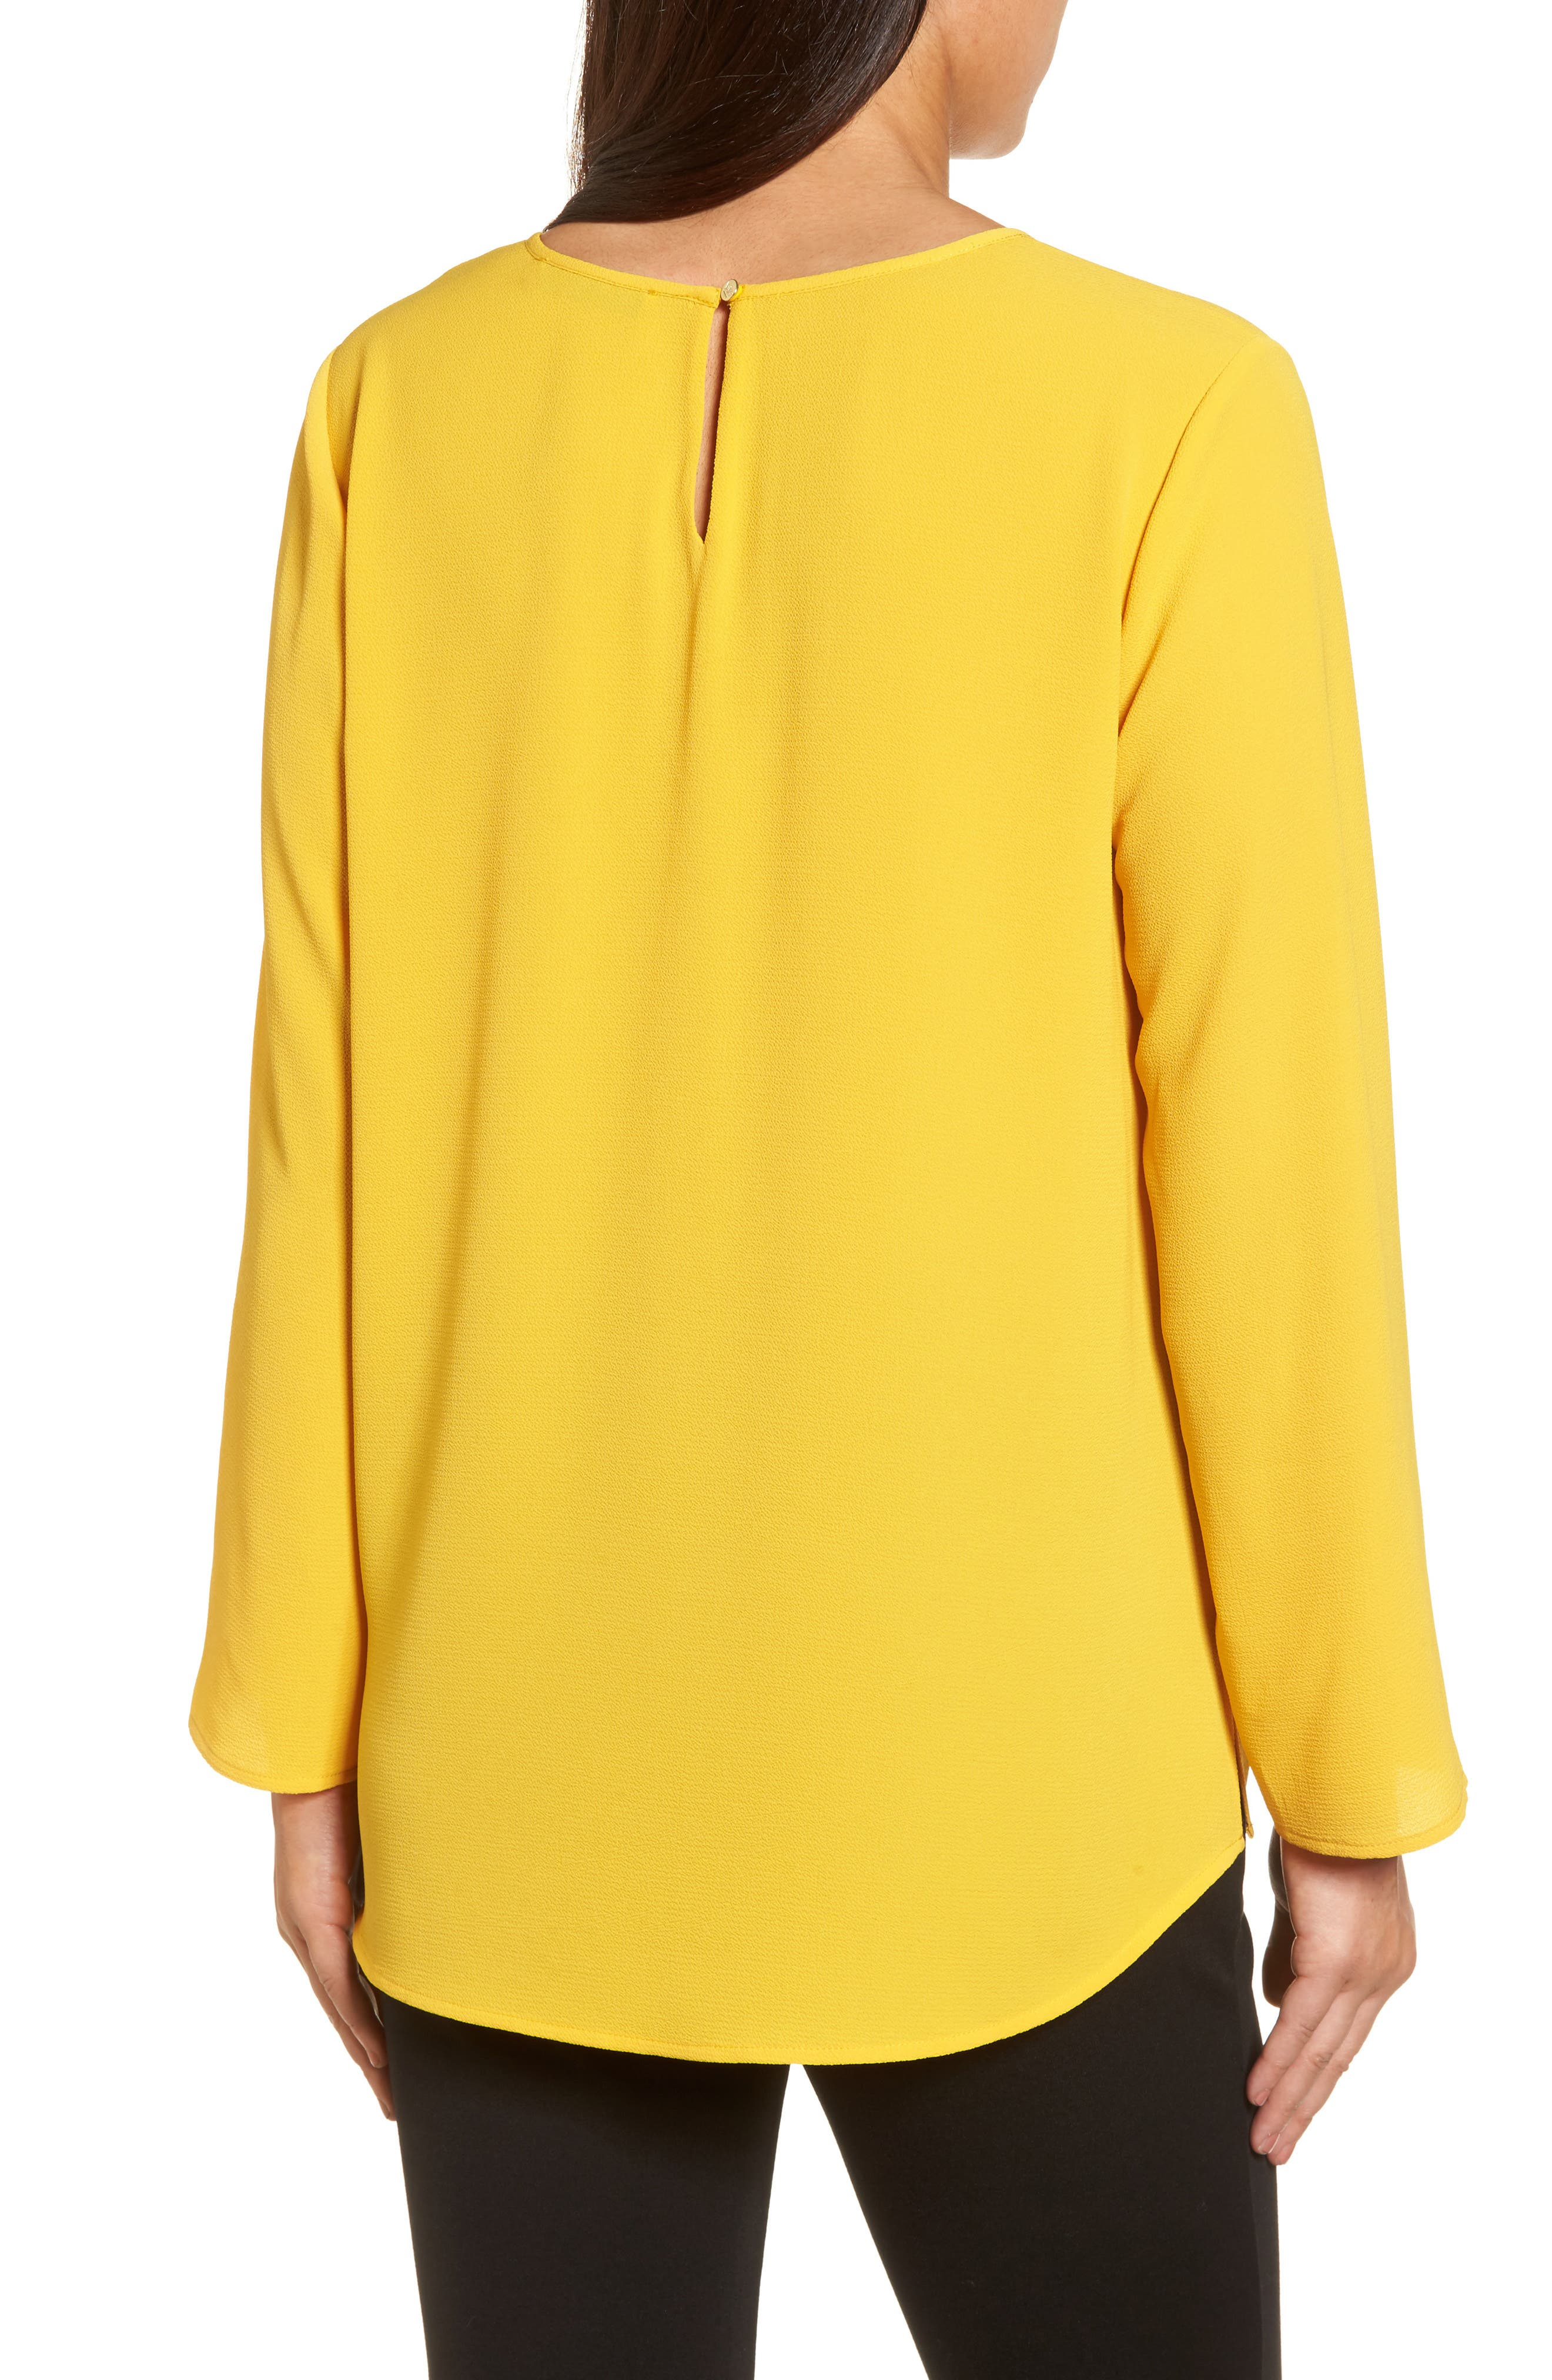 Pintuck Front Blouse,                             Alternate thumbnail 2, color,                             730